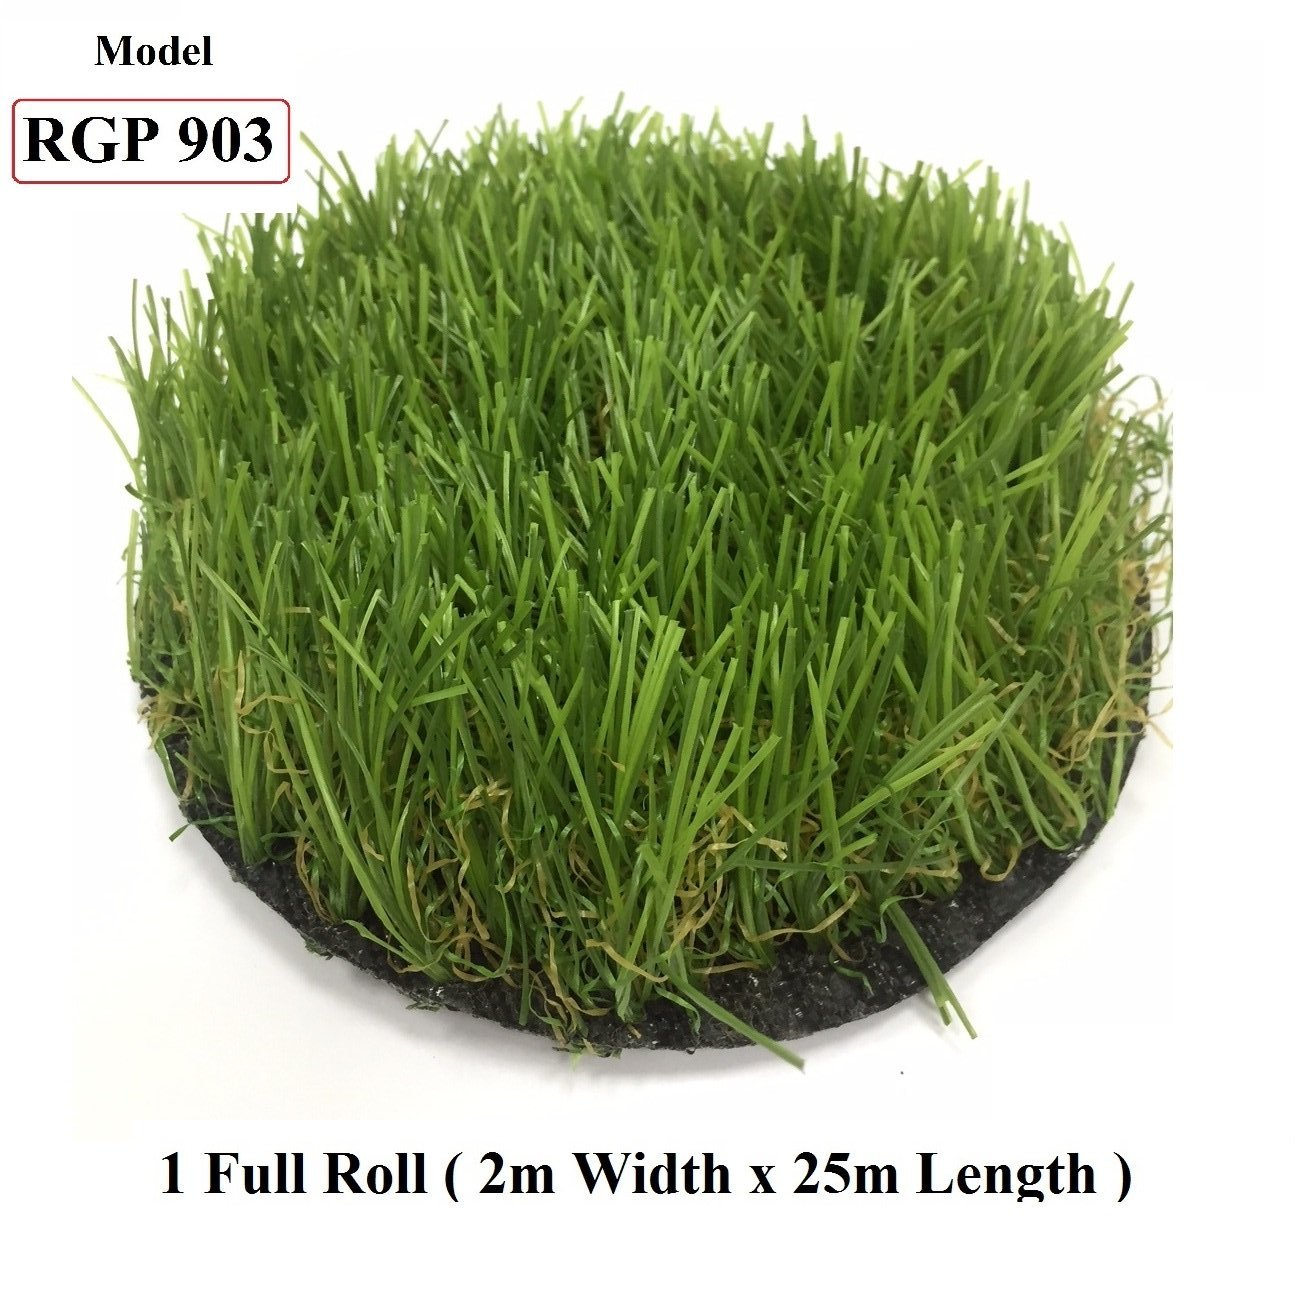 ResiGrass Artificial Grass RGP903 - 40mm - 2m (W) x 25m (L), SmartGardenCenter.com